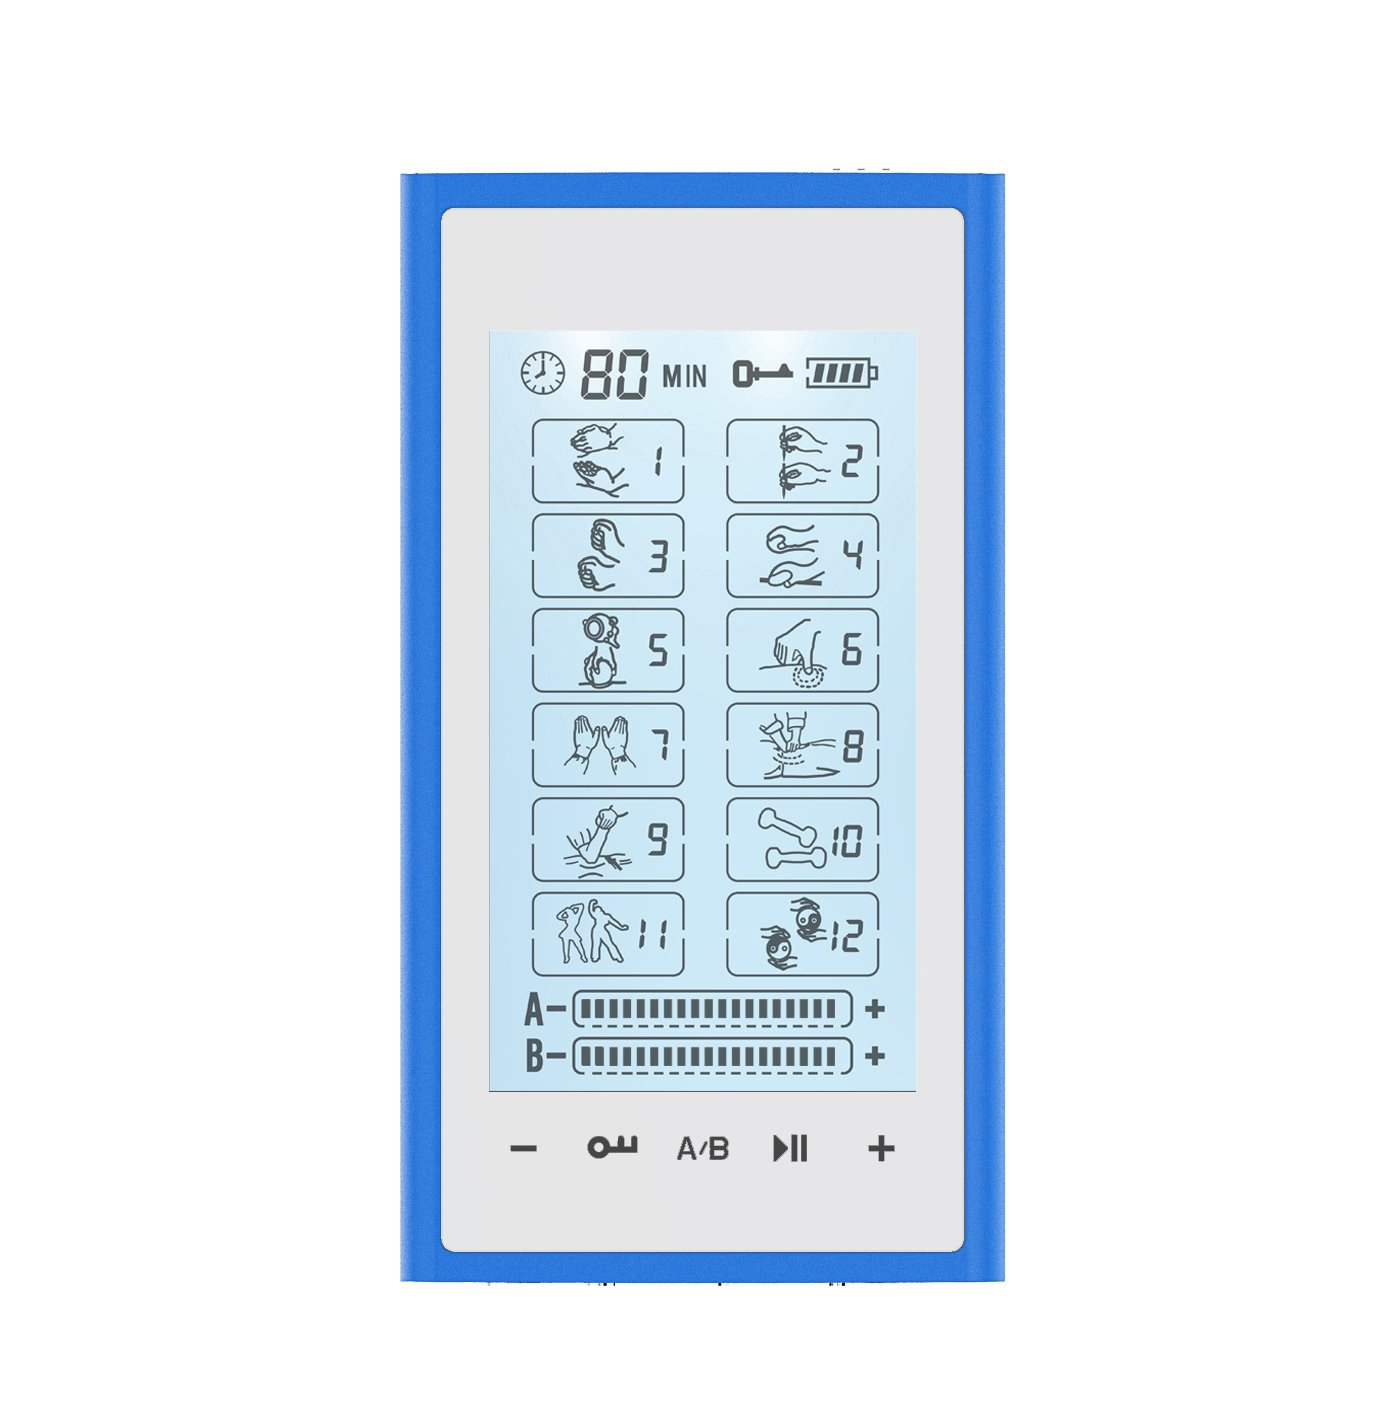 T12AB2 HealthmateForever TENS Unit Electrical Muscle Stimulator Blue in White + 4in1 Leads Wire and